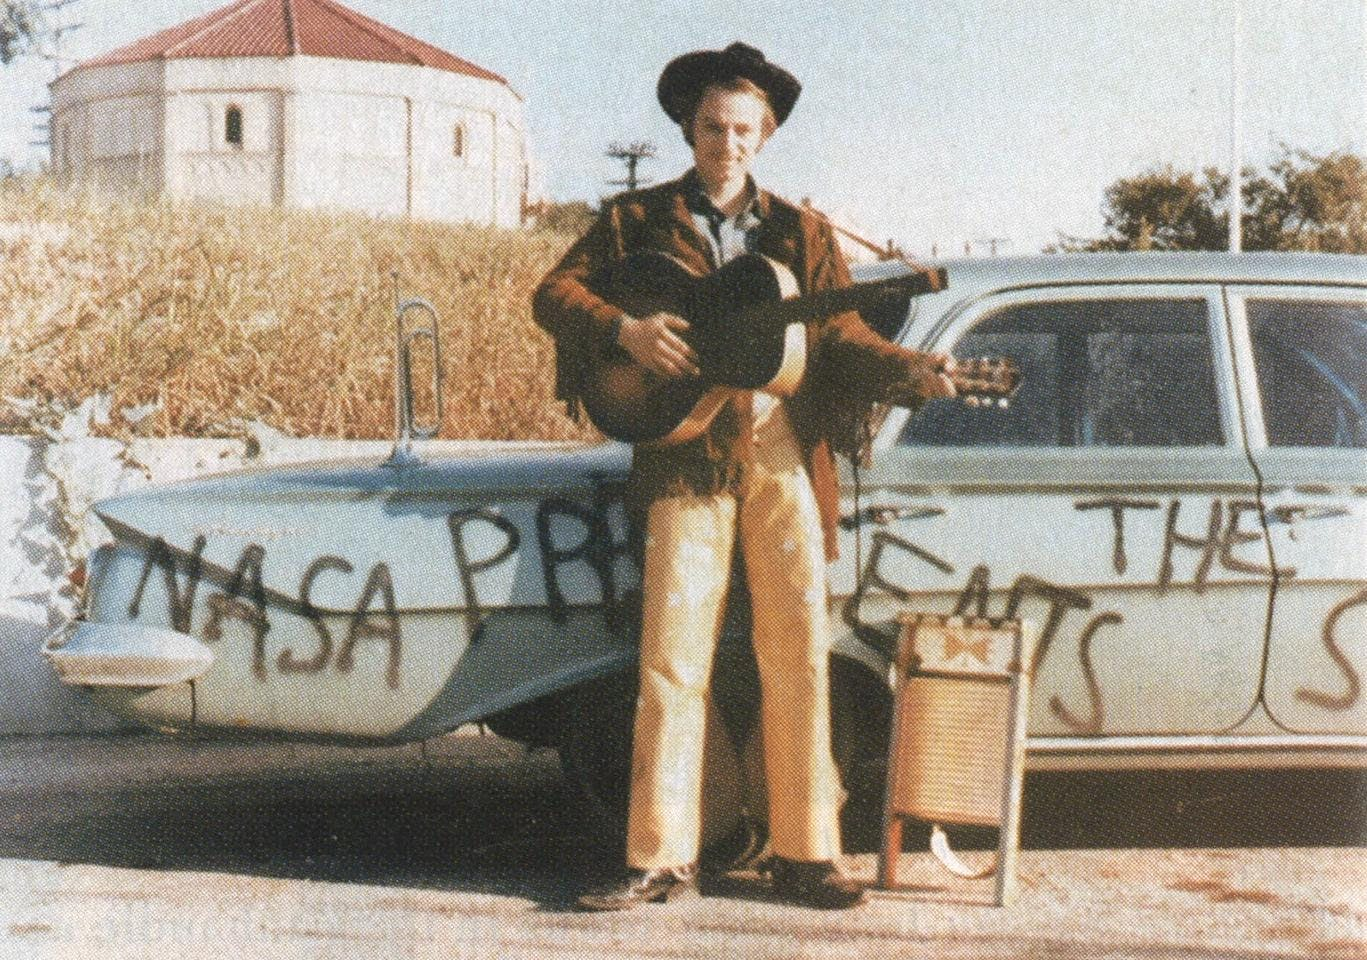 Mid-sixties: Norman Odam, the Legendary Stardust Cowboy, in front of his car.